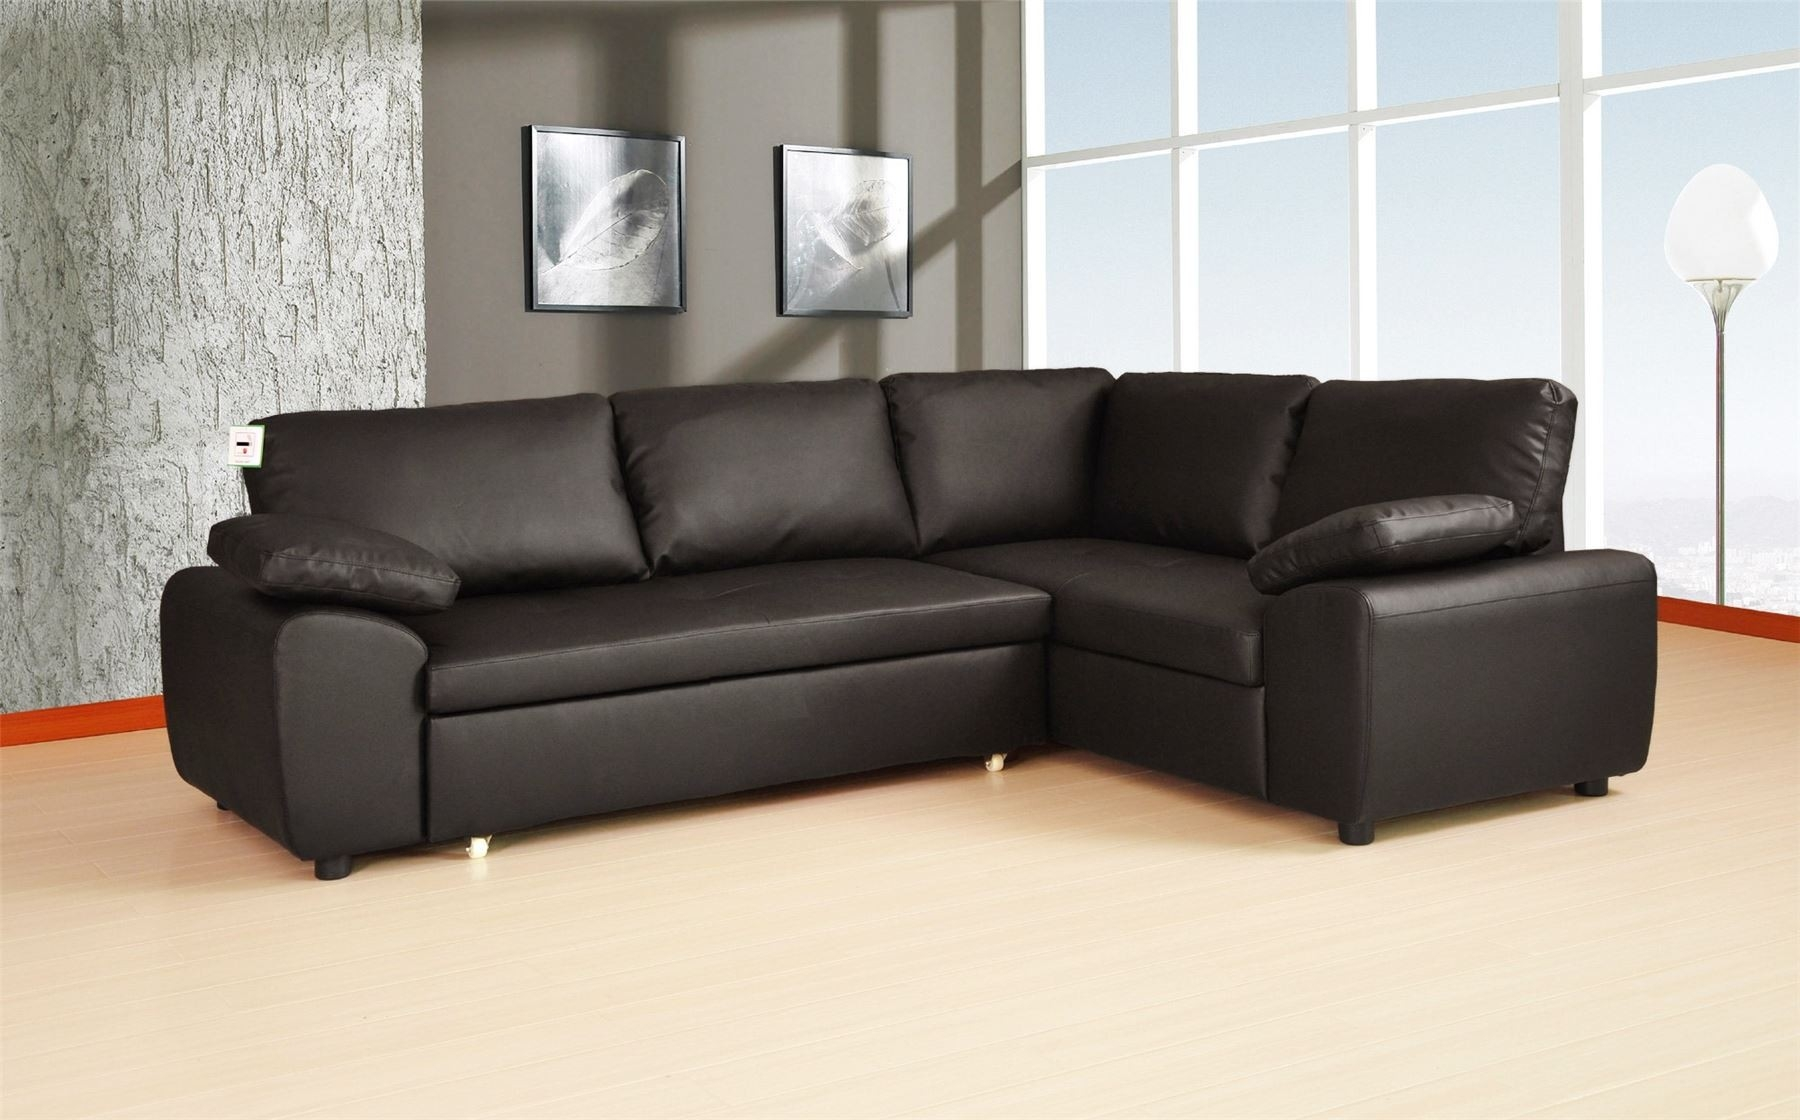 Sofa Bed Leather Corner Tehranmix Decoration With Regard To Leather Corner Sofa Bed (Image 15 of 15)